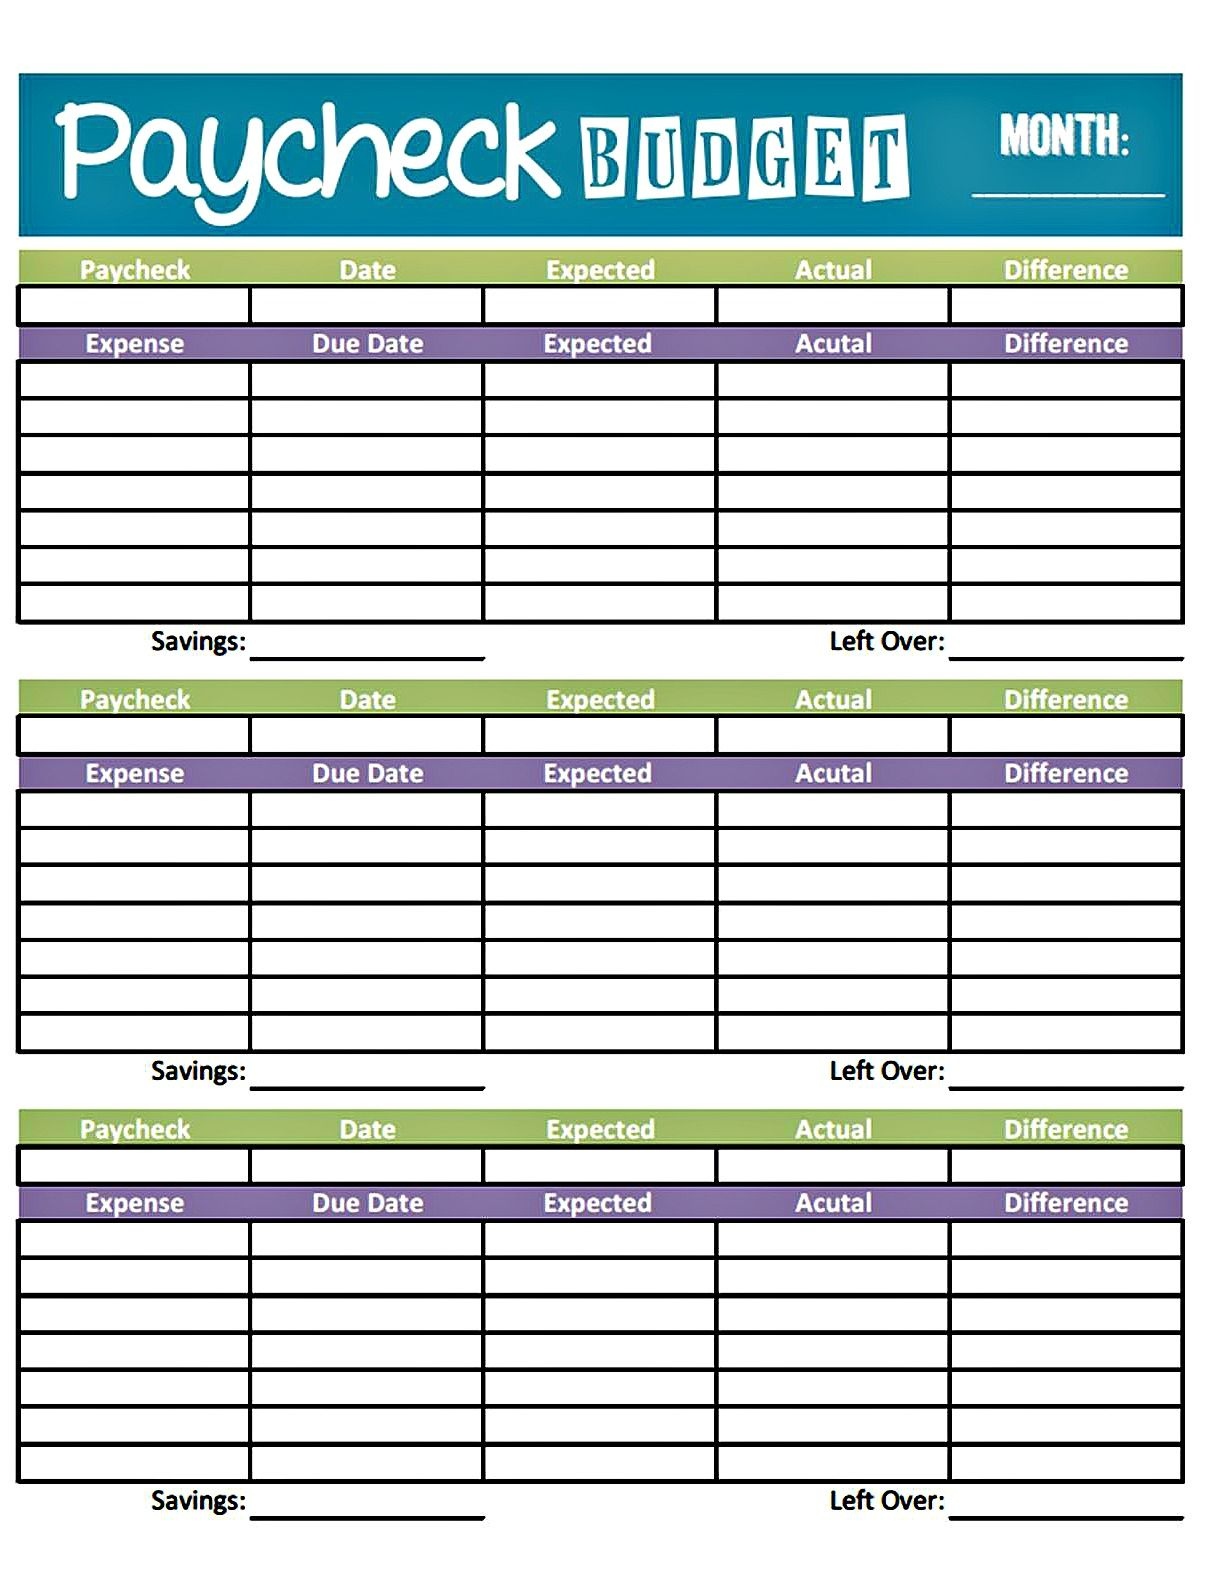 Worksheets Budgeting Worksheets easy printable budget worksheet get paid weekly and charlie gets bi weekly